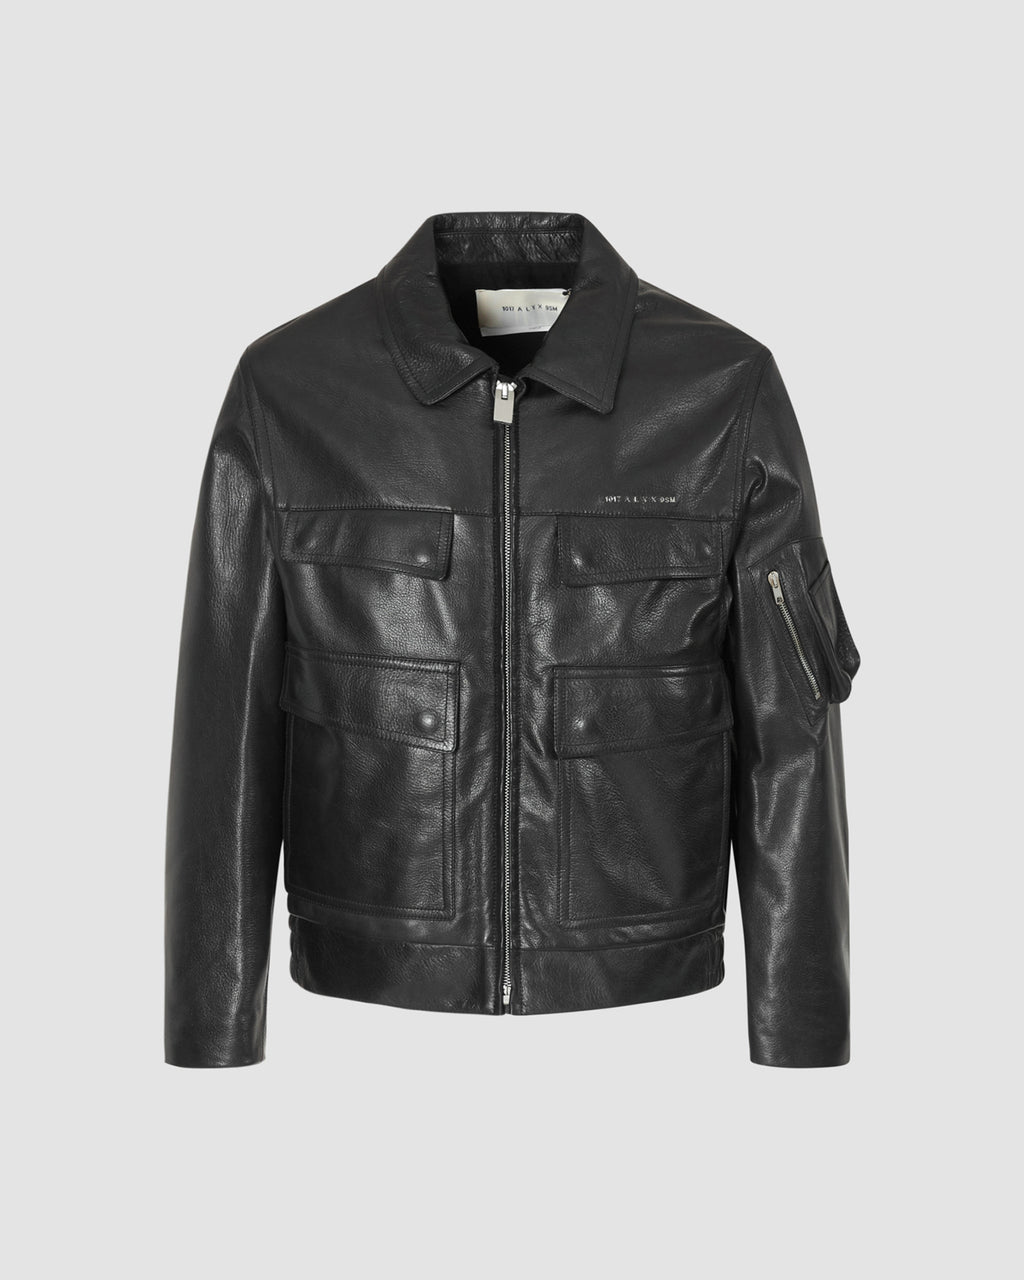 CALFSKIN LEATHER POLICE JACKET PRE-ORDER